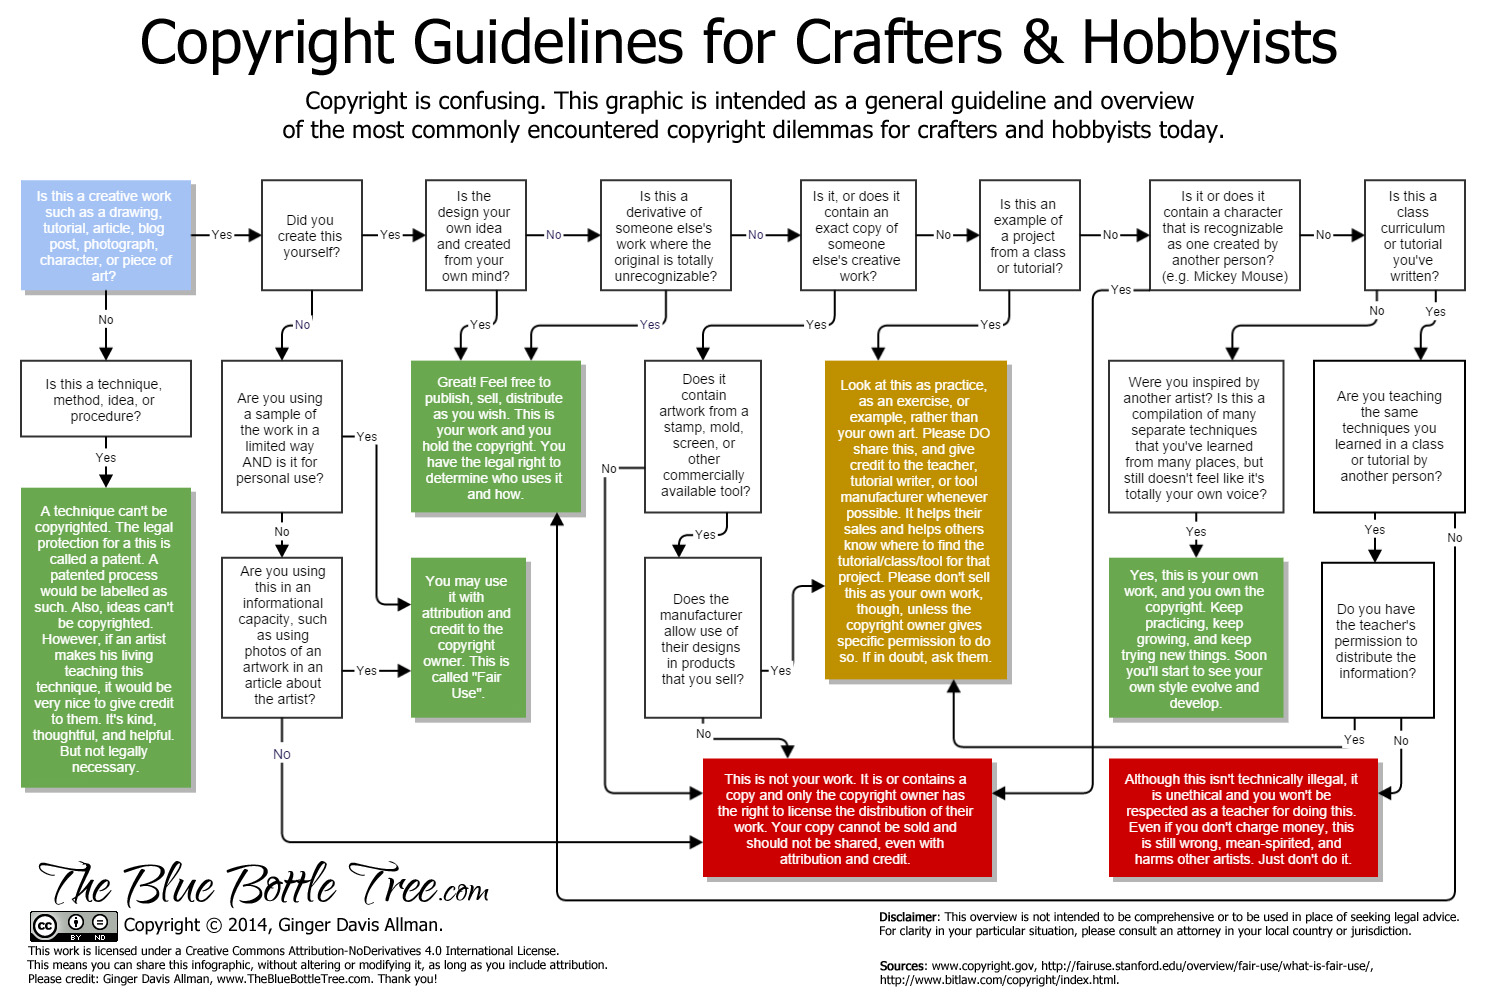 The Blue Bottle Tree: Copyright Guidelines for Crafters & Hobbyists